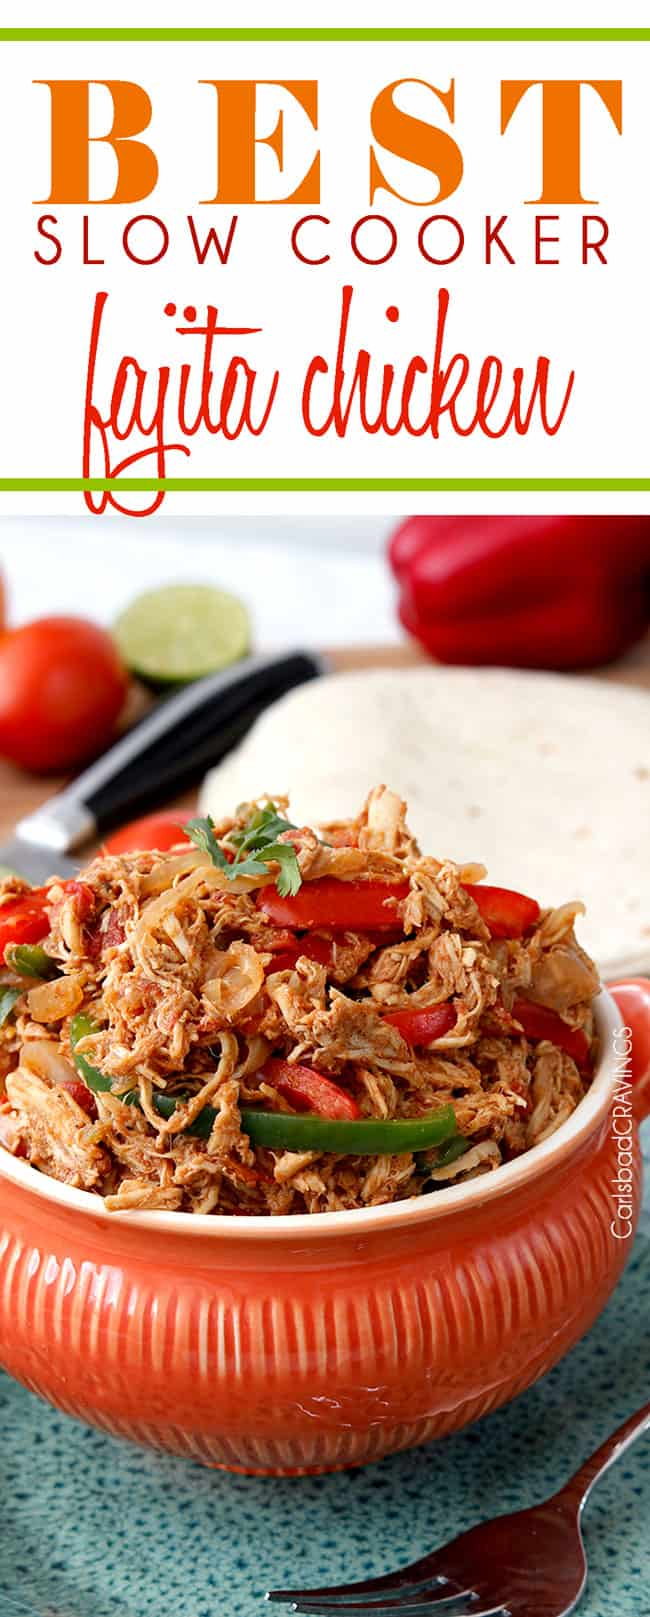 Slow Cooker Citrus Fajita Chicken | Carlsbad Cravings